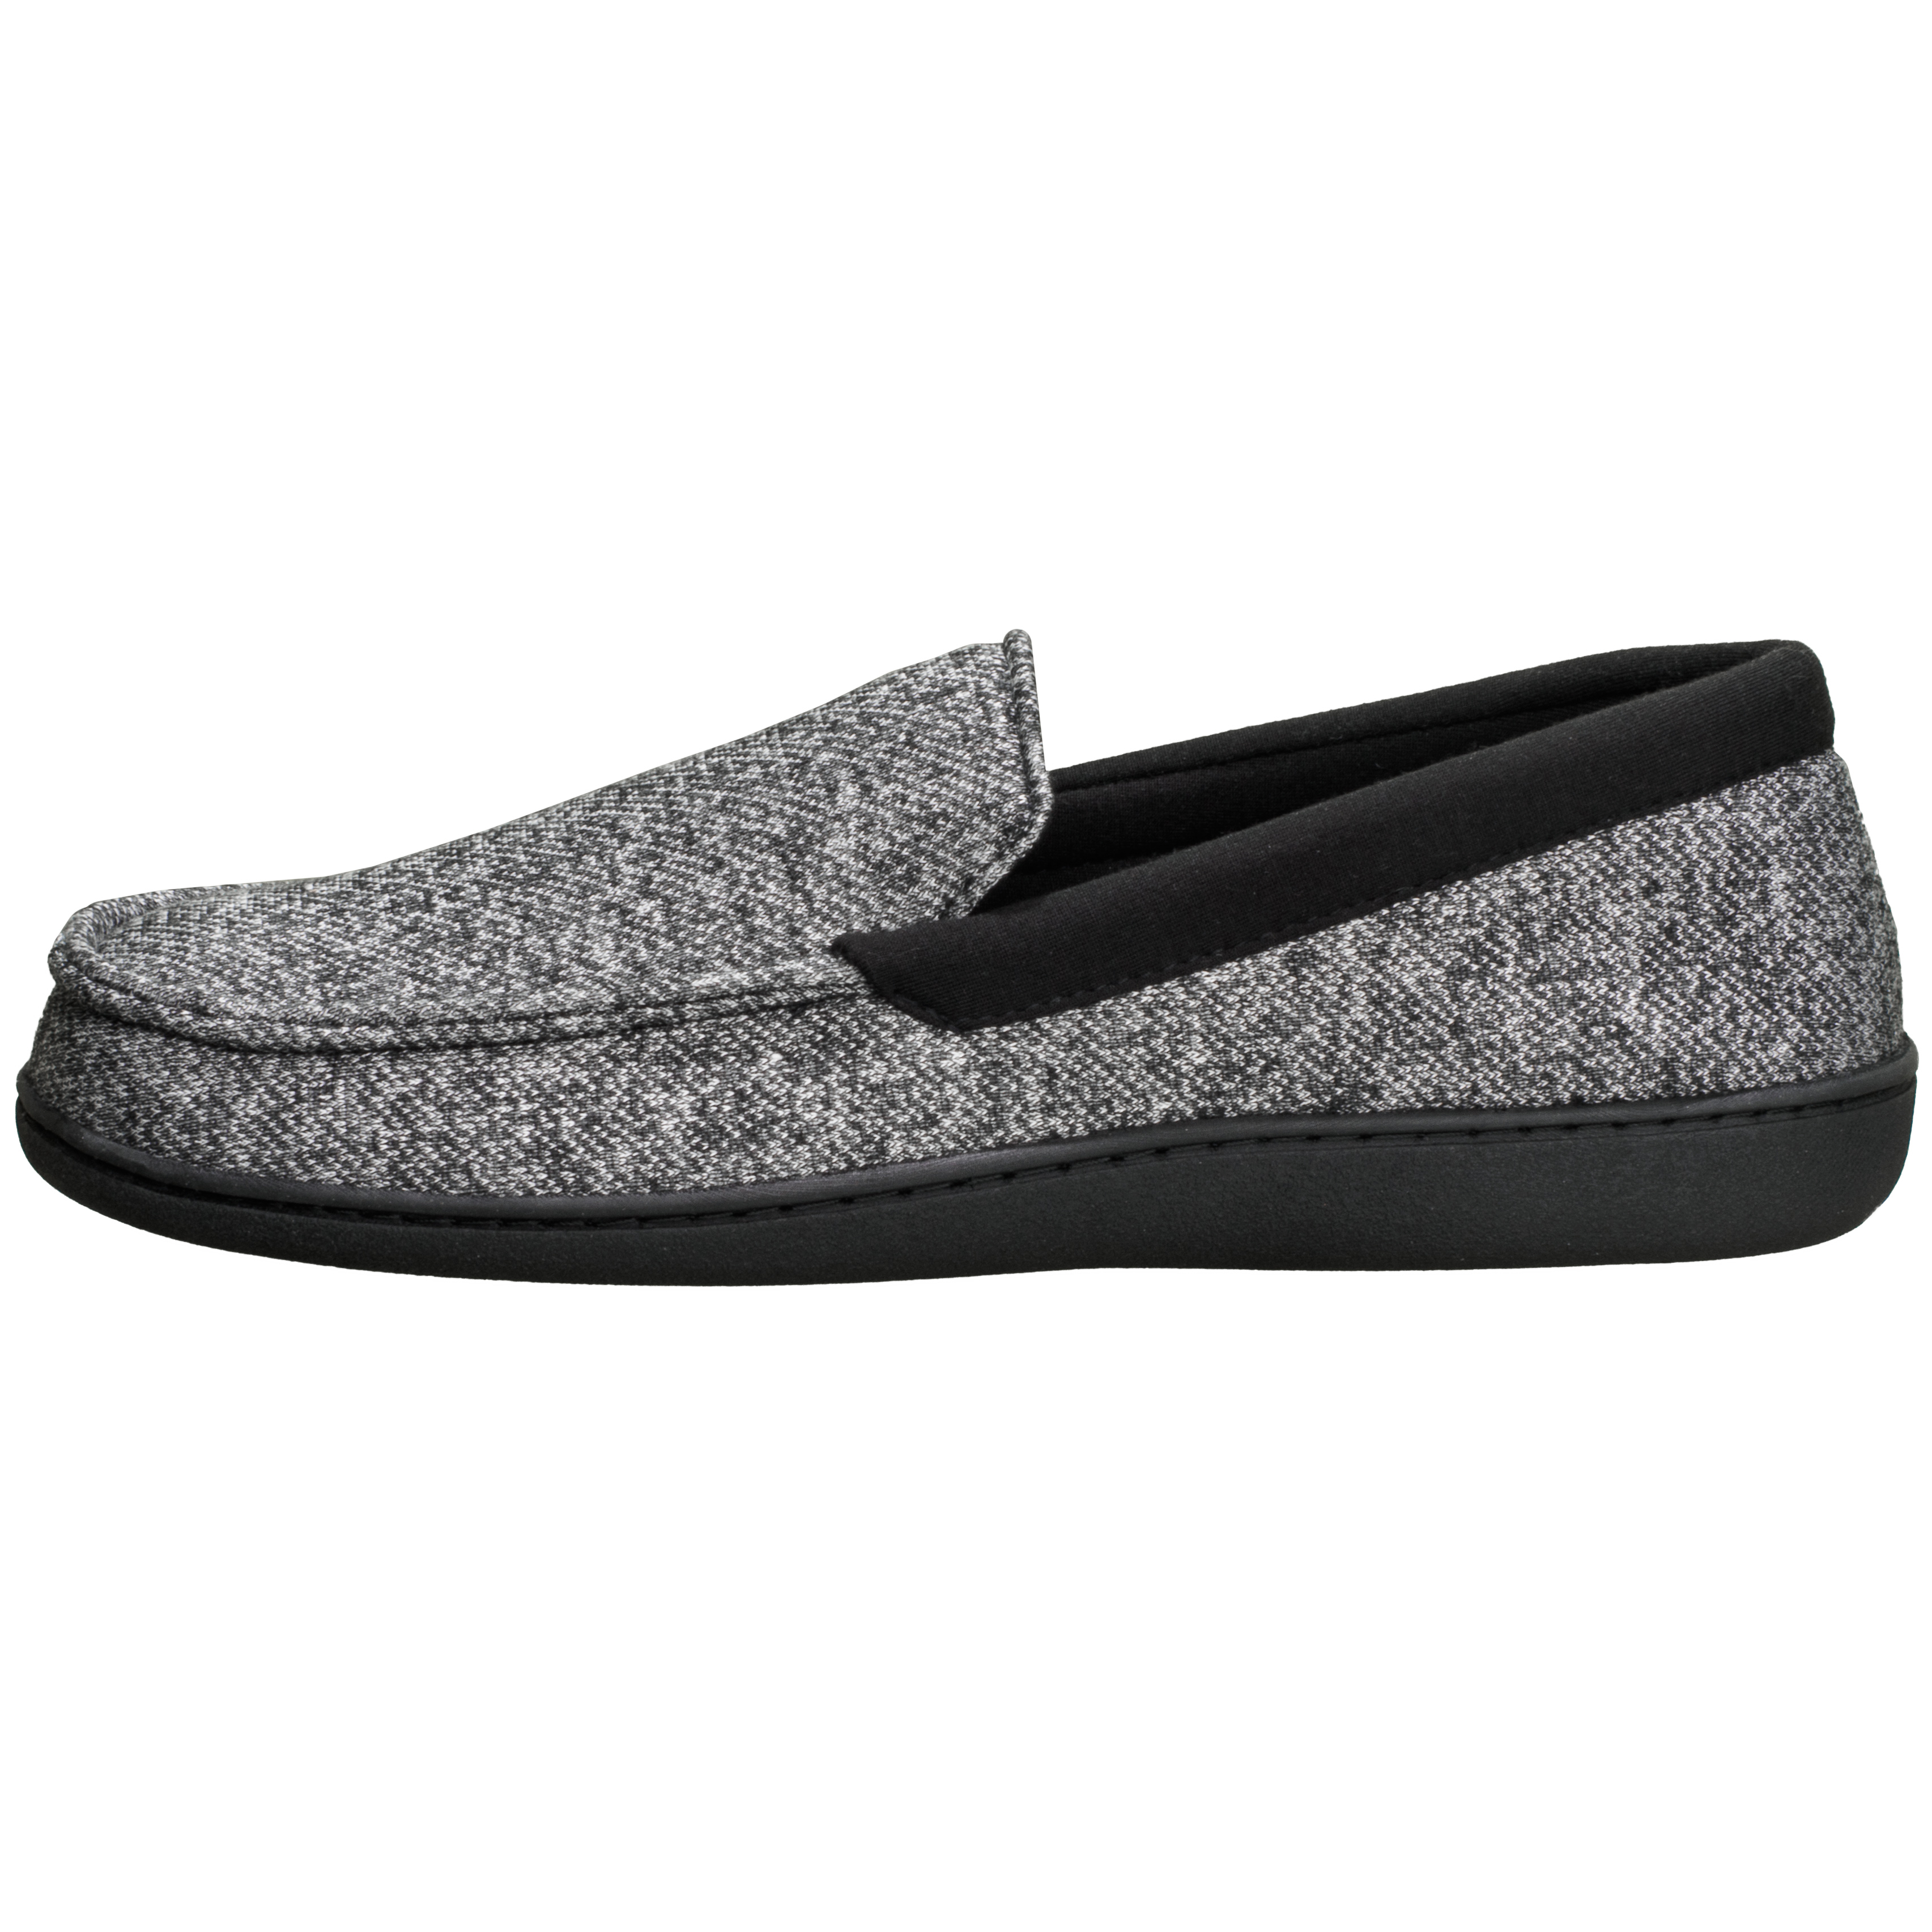 Hanes Mens Slippers House Shoes Moccasin Comfort Memory Foam Indoor Outdoor Fresh IQ